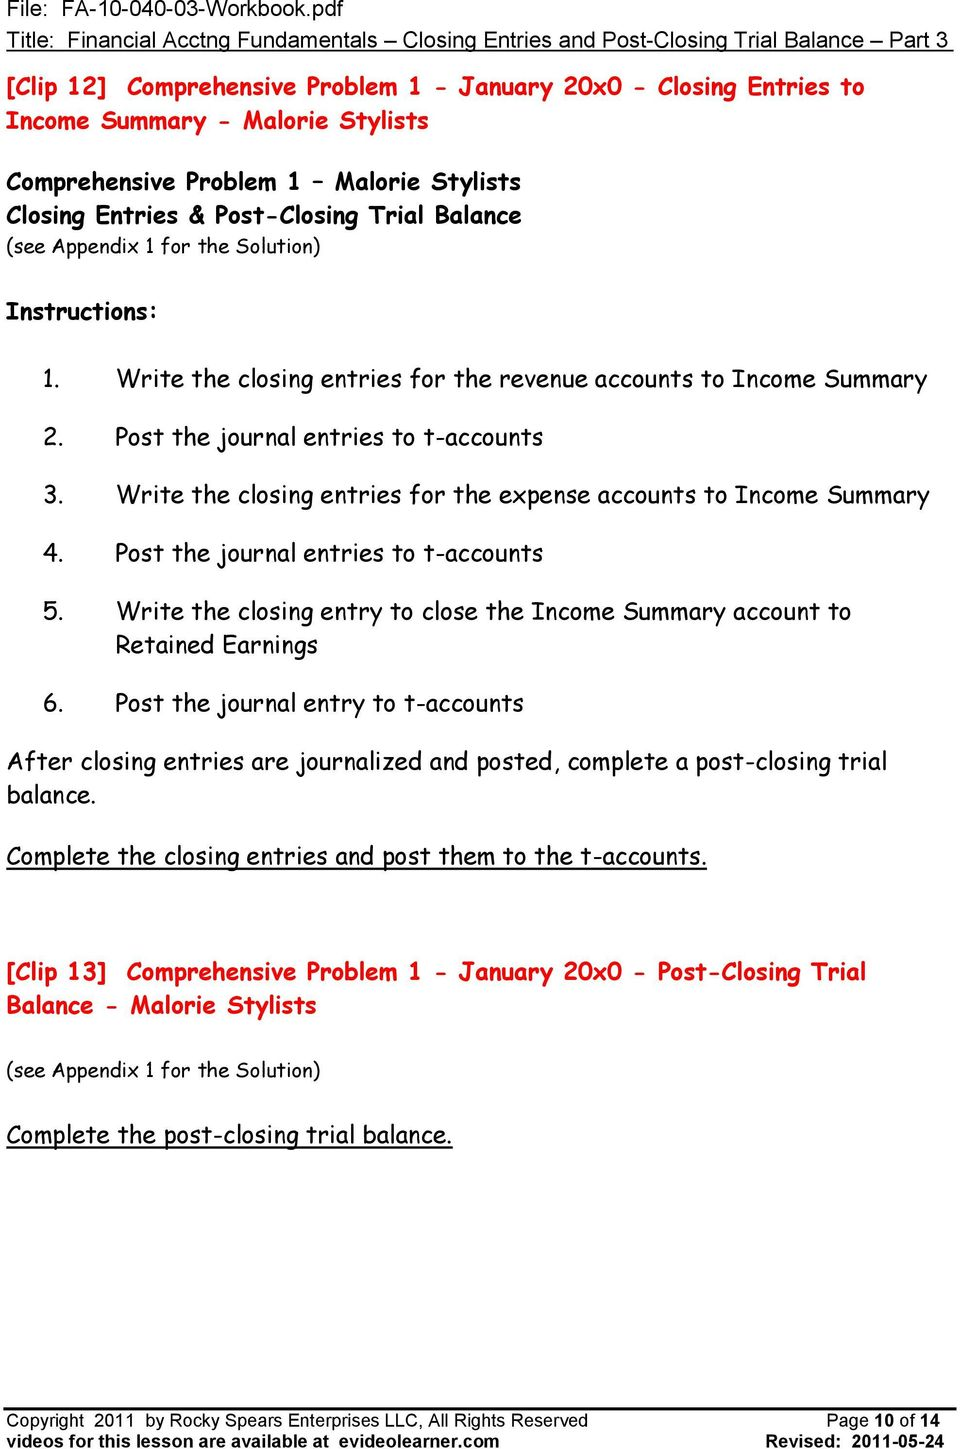 Lesson FA Financial Accounting Fundamentals - Closing Entries and